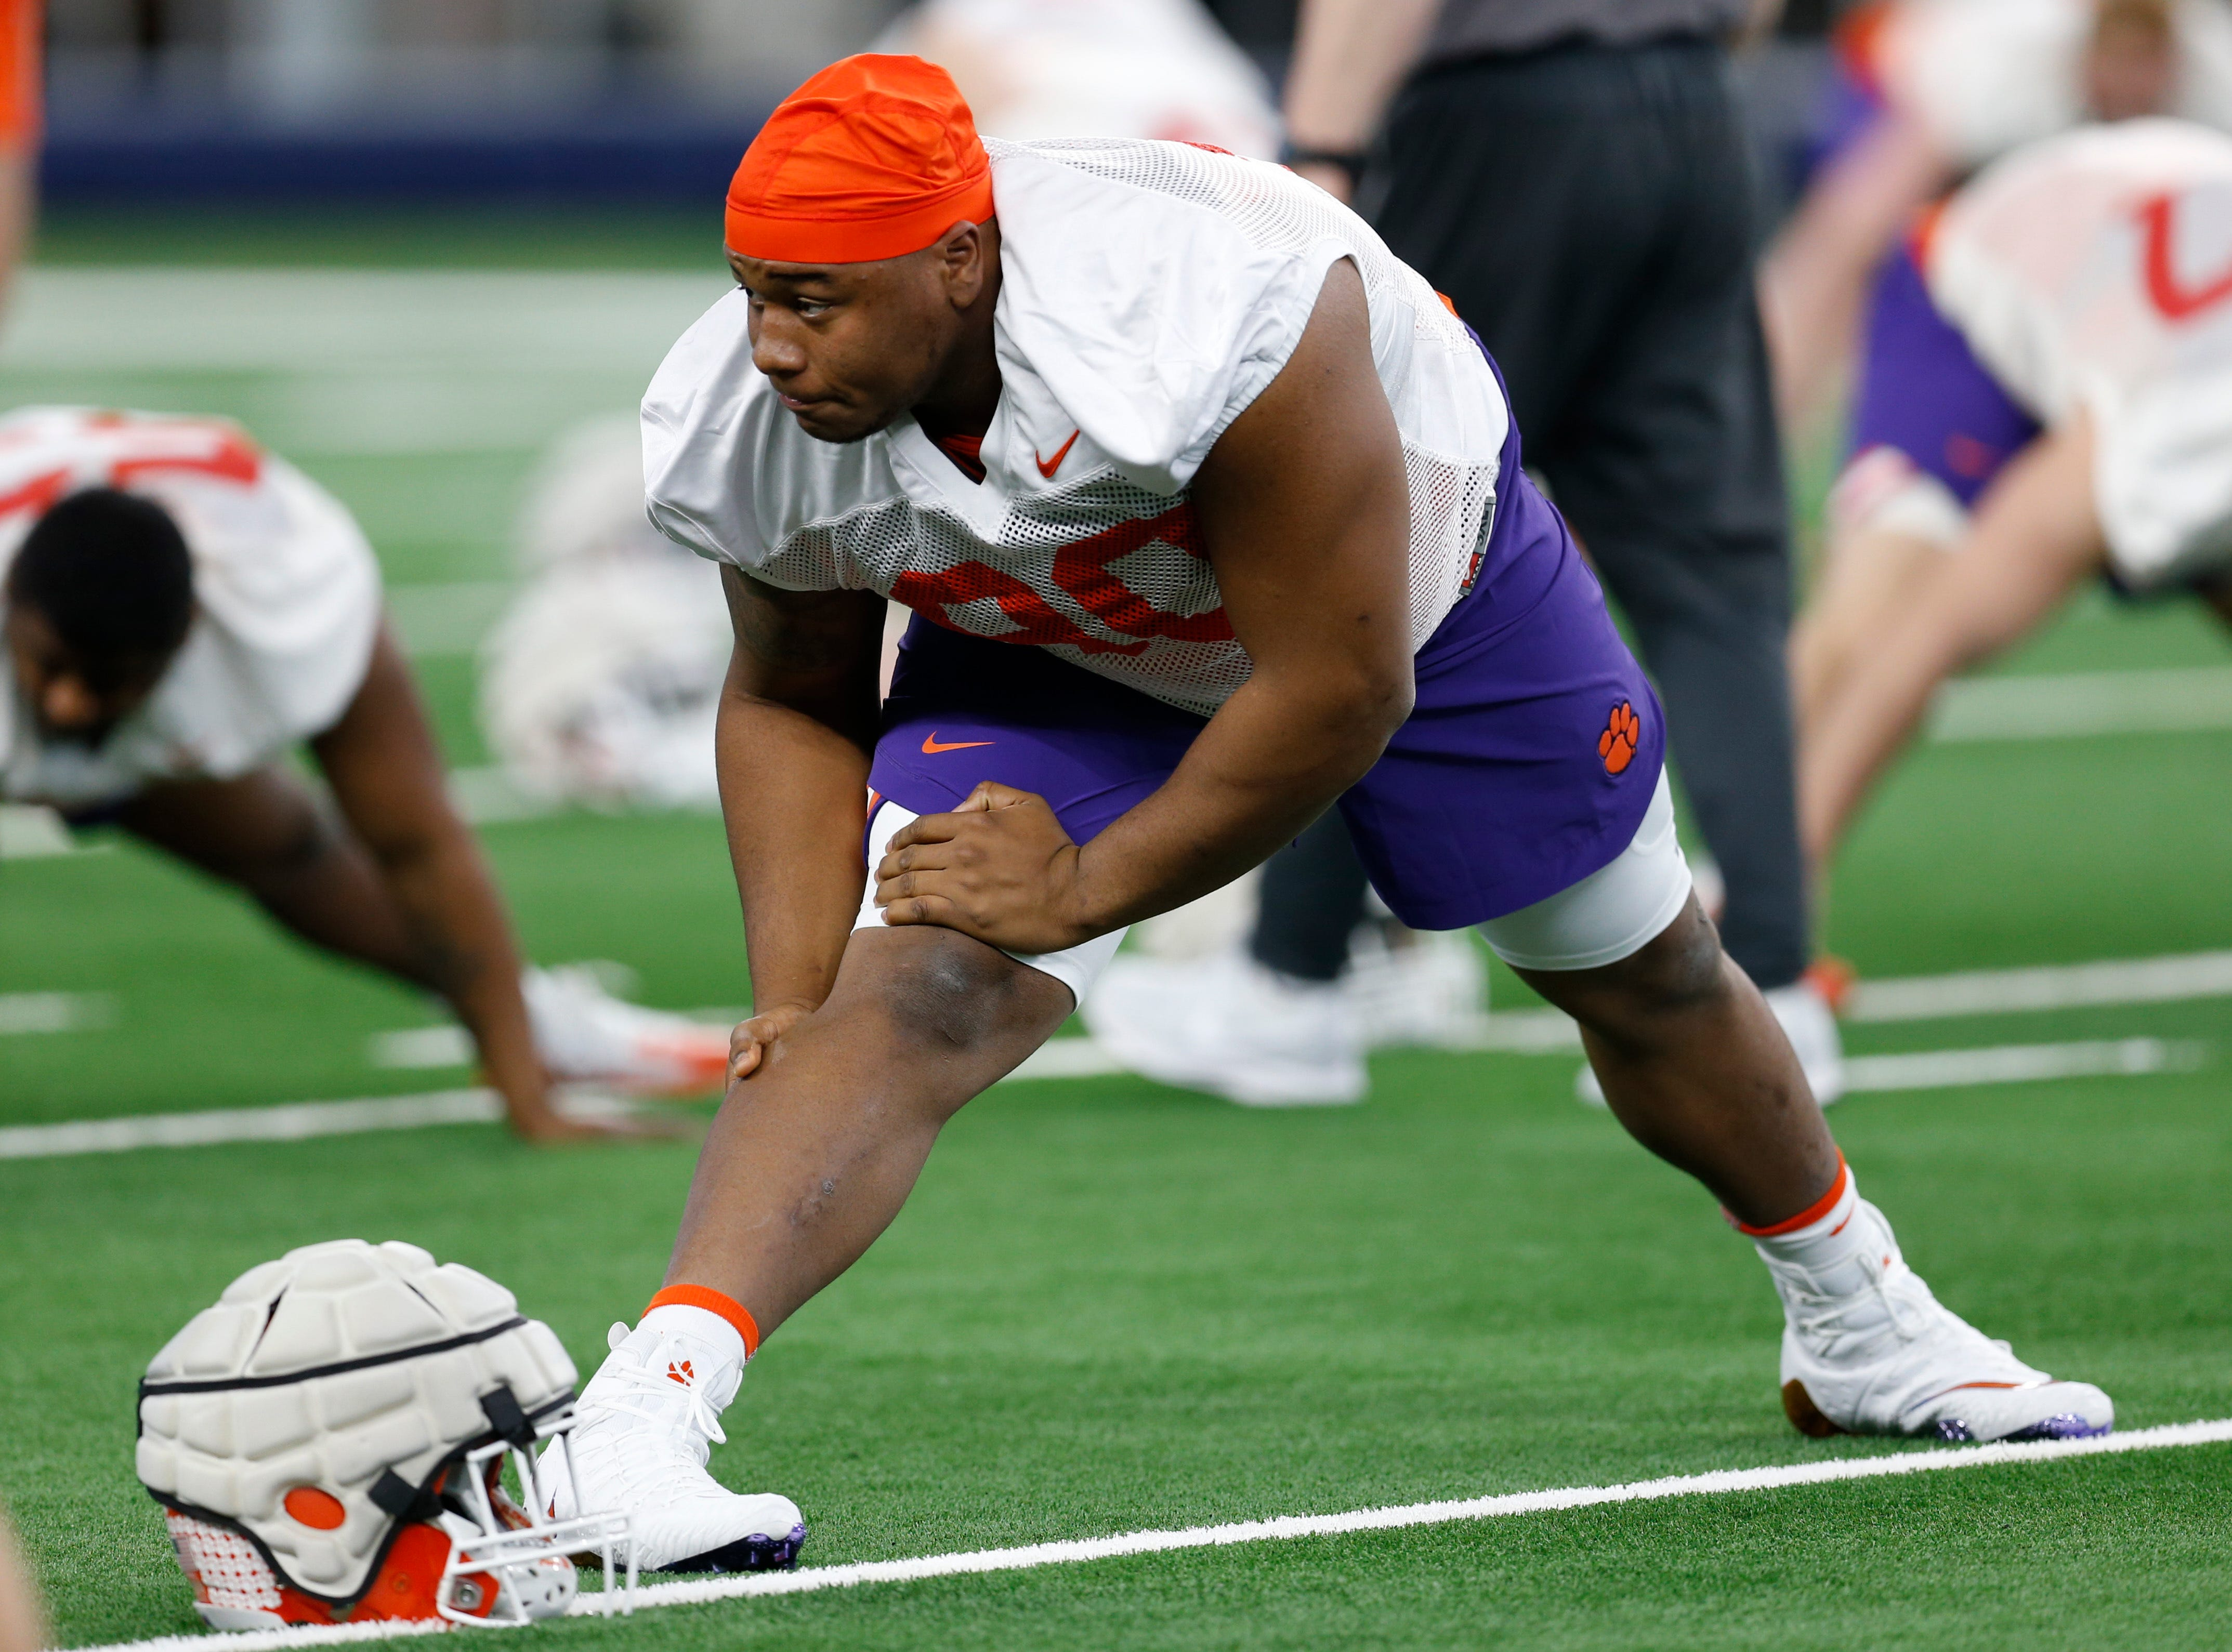 Clemson's Swinney says suspended DT Lawrence will be missed